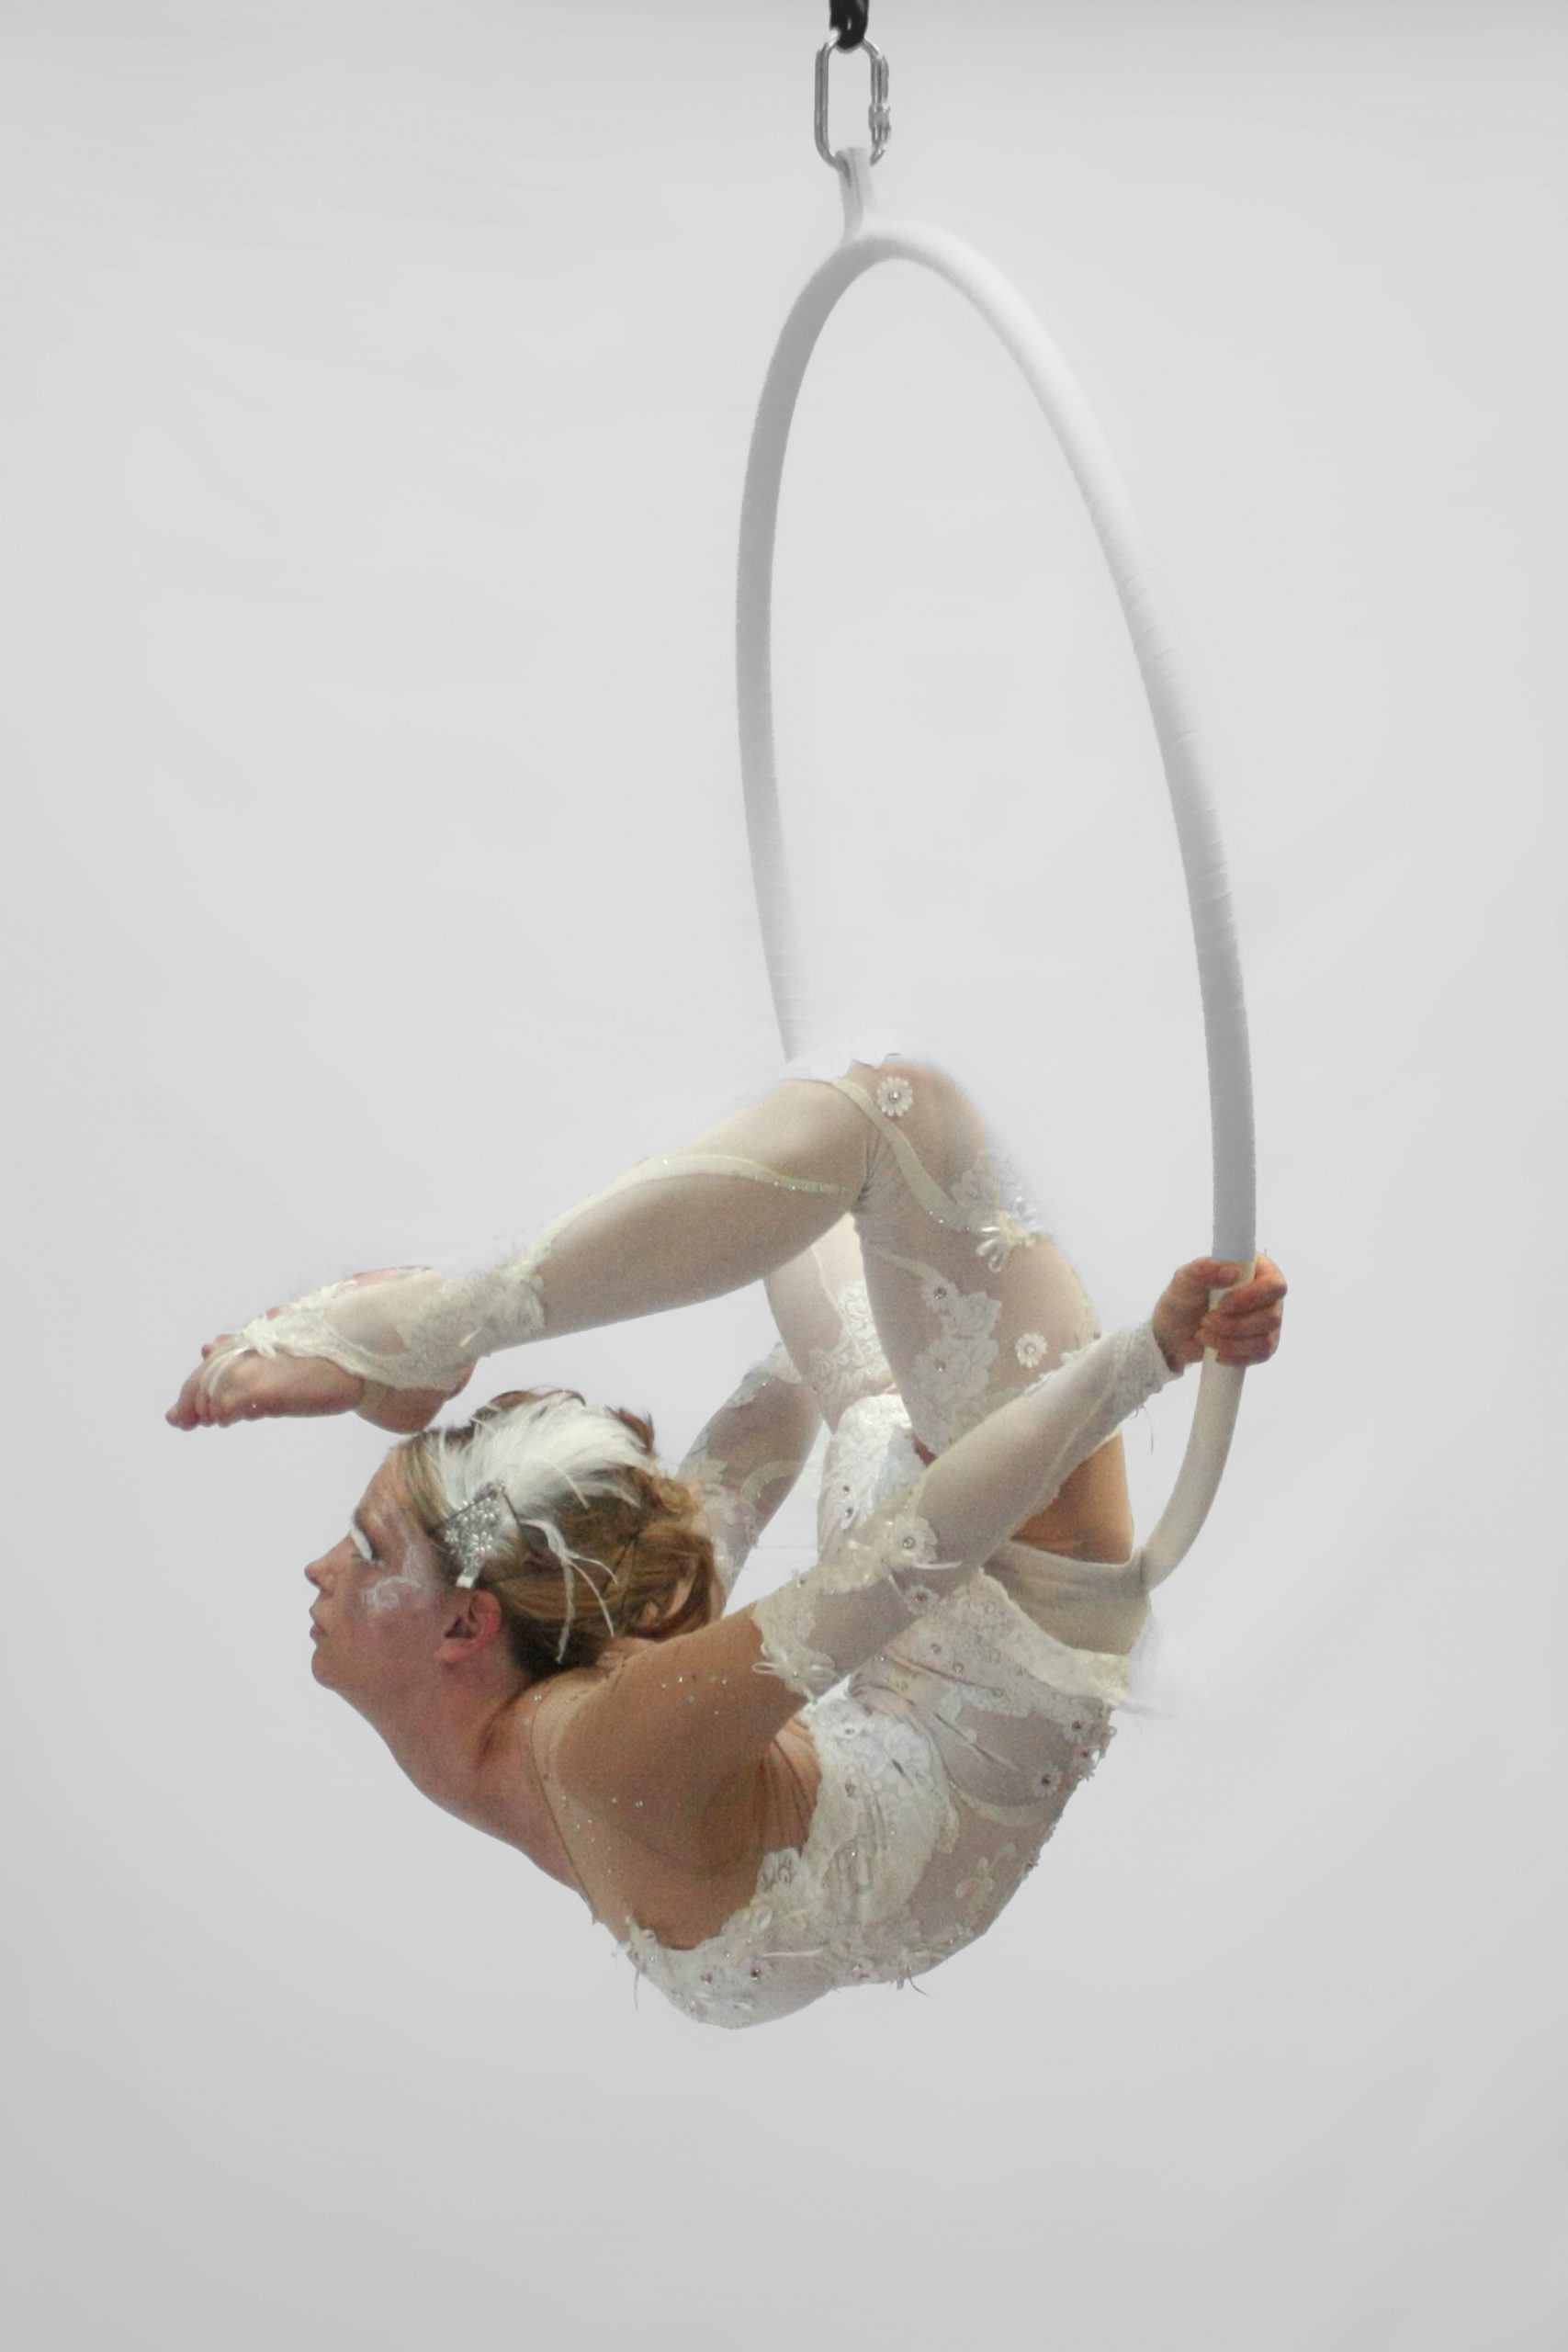 JF Aerialist and contorionist in white in a hoop